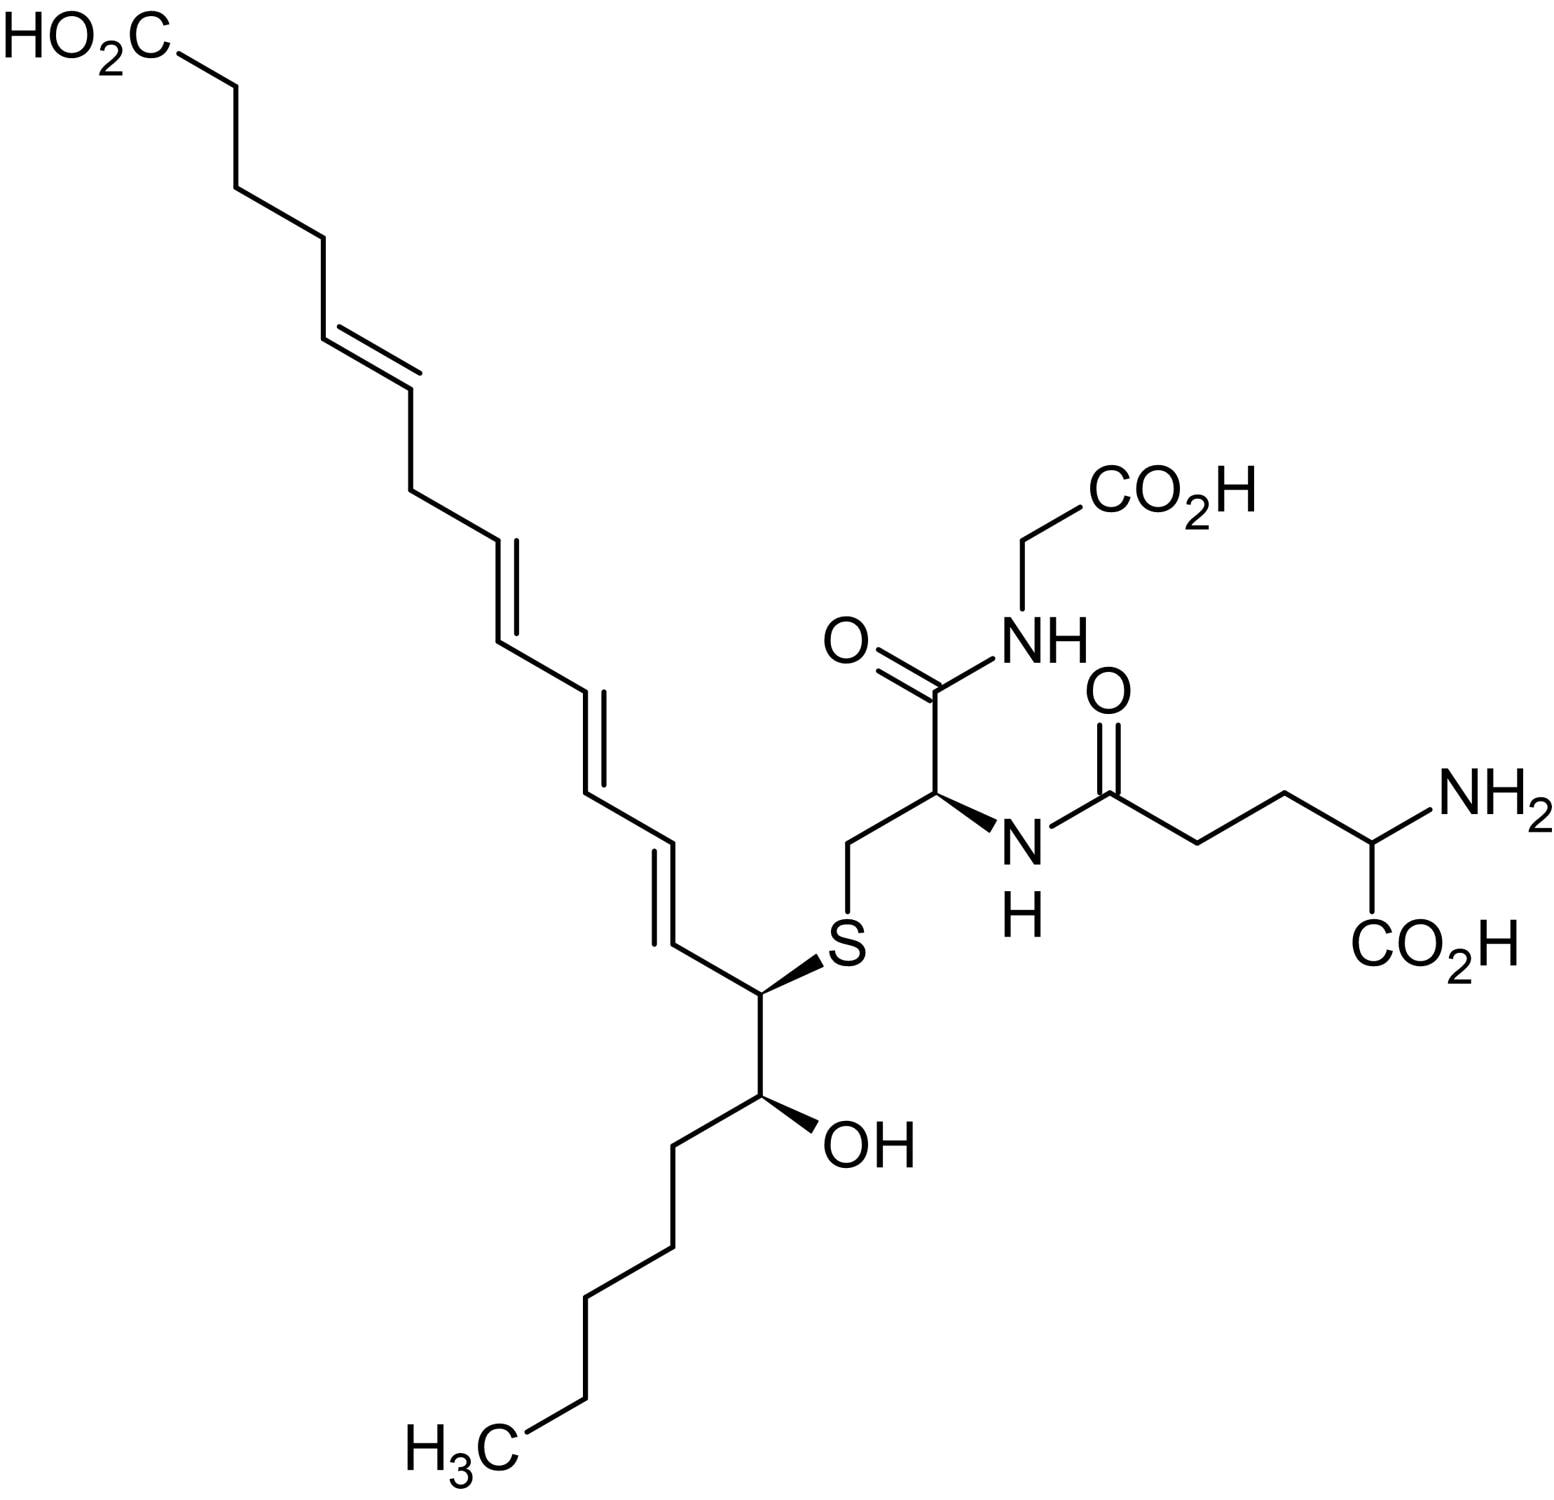 Chemical Structure - 14,15-Leukotriene C4 (eoxin C4), proinflammatory mediator (ab141697)